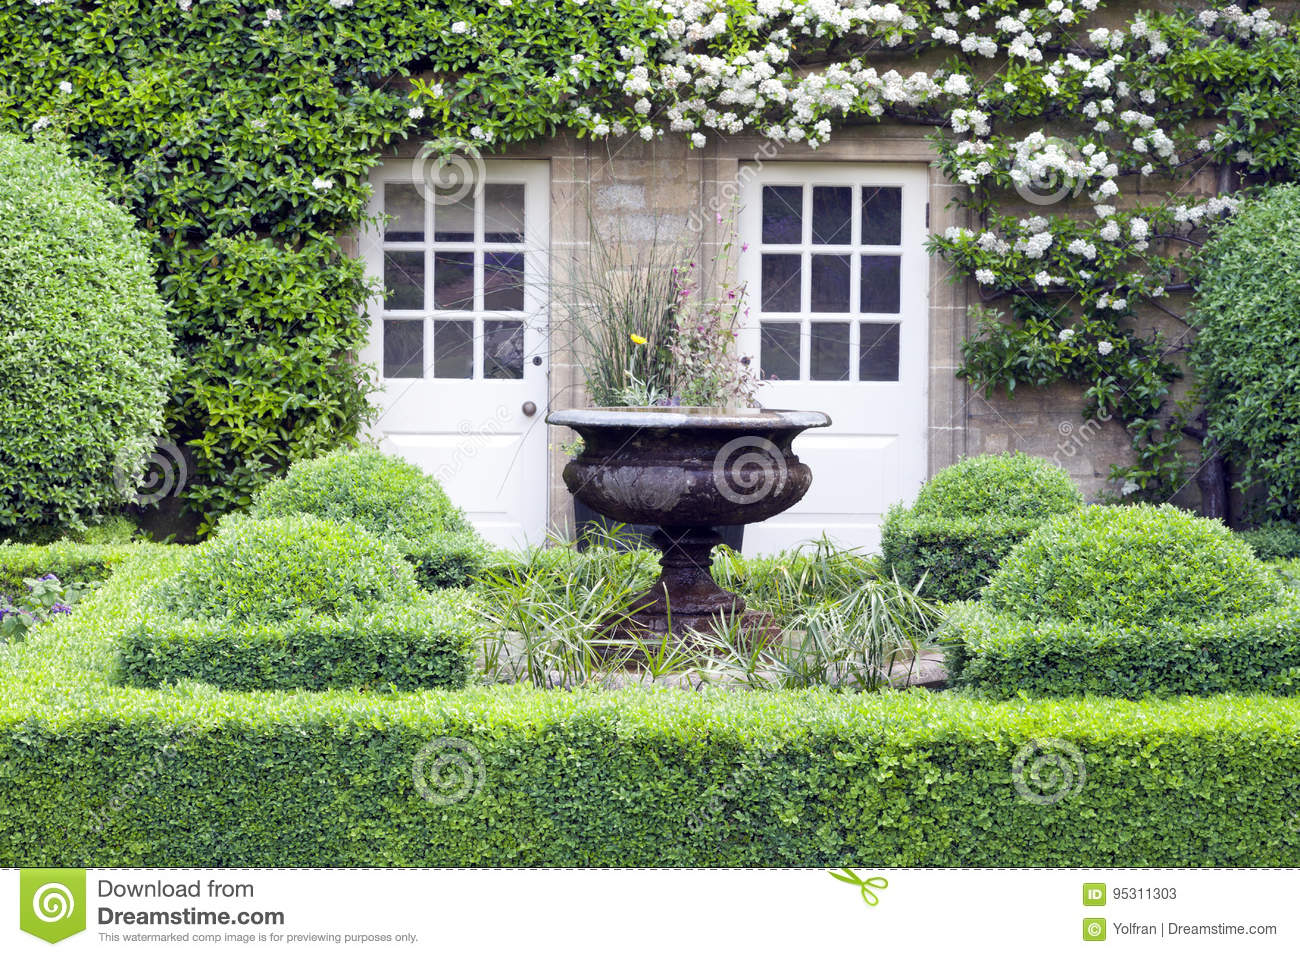 415 Flowering Topiary Photos Free Royalty Free Stock Photos From Dreamstime